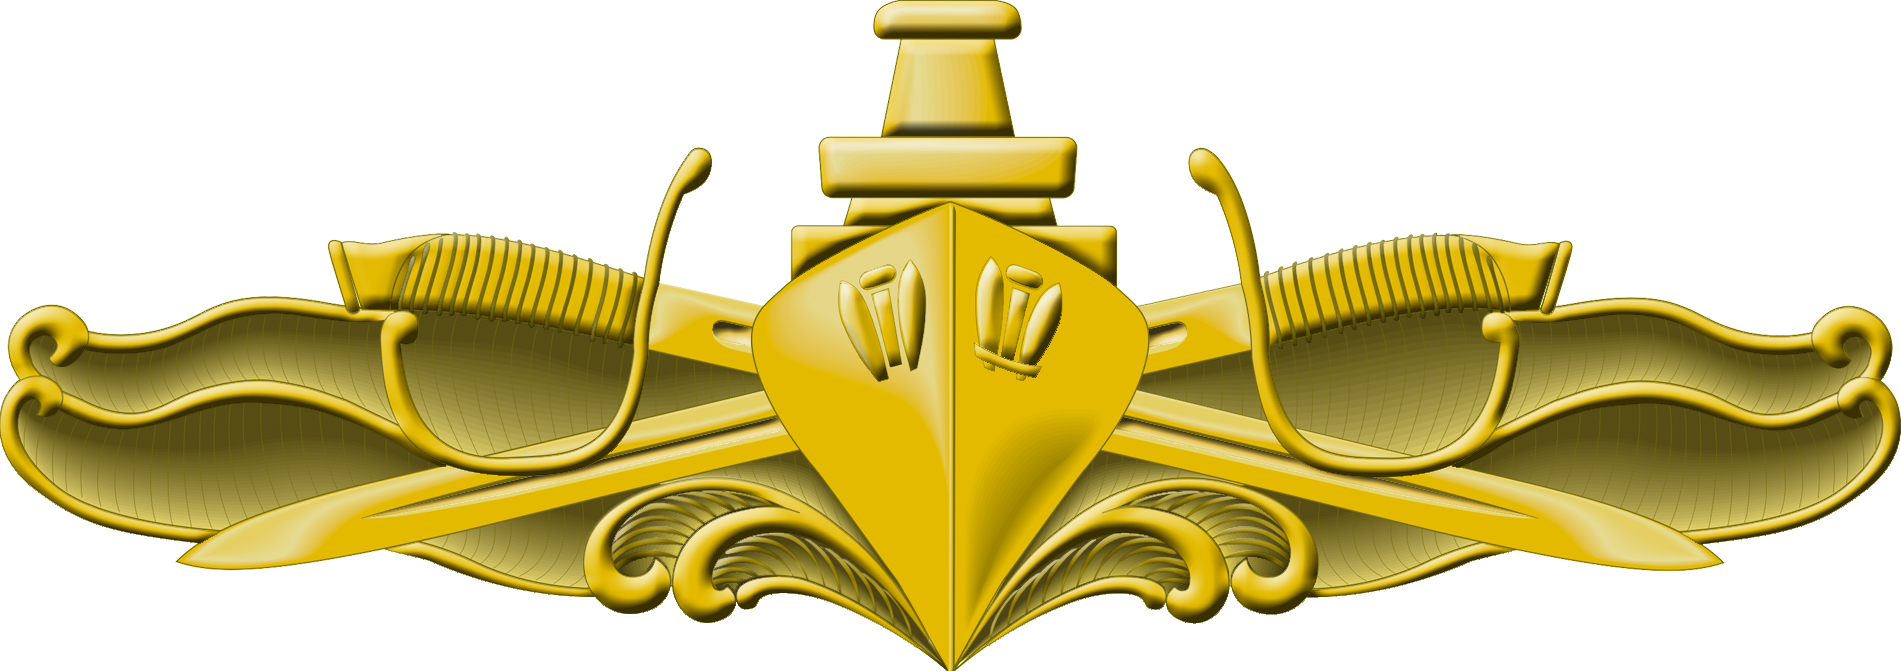 File:Surface Warfare Officer Insignia.png - Wikimedia Commons